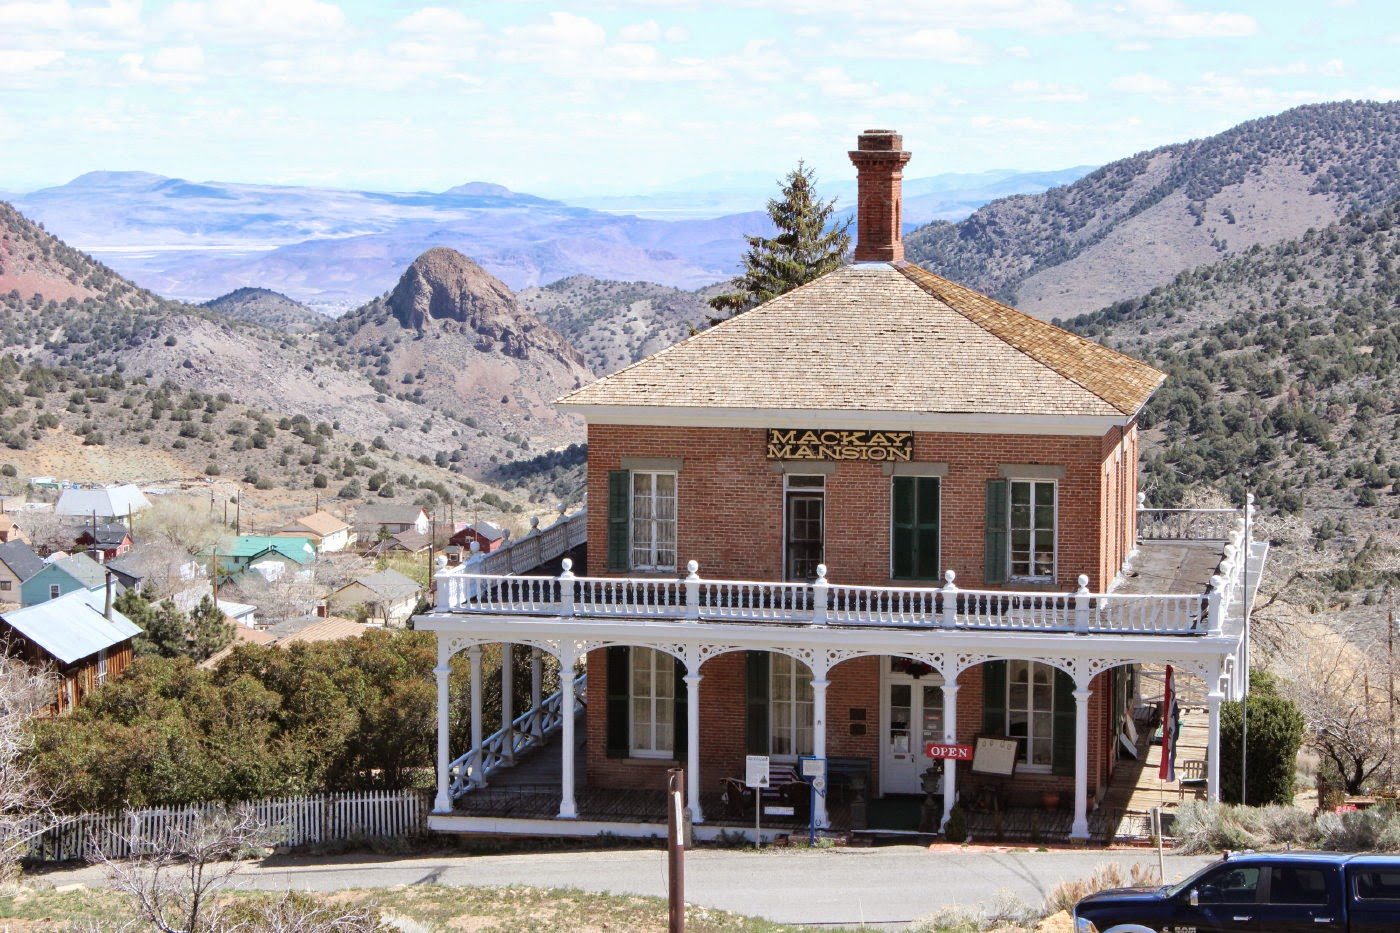 J and B and Lady Blue: Virginia City, Nevada